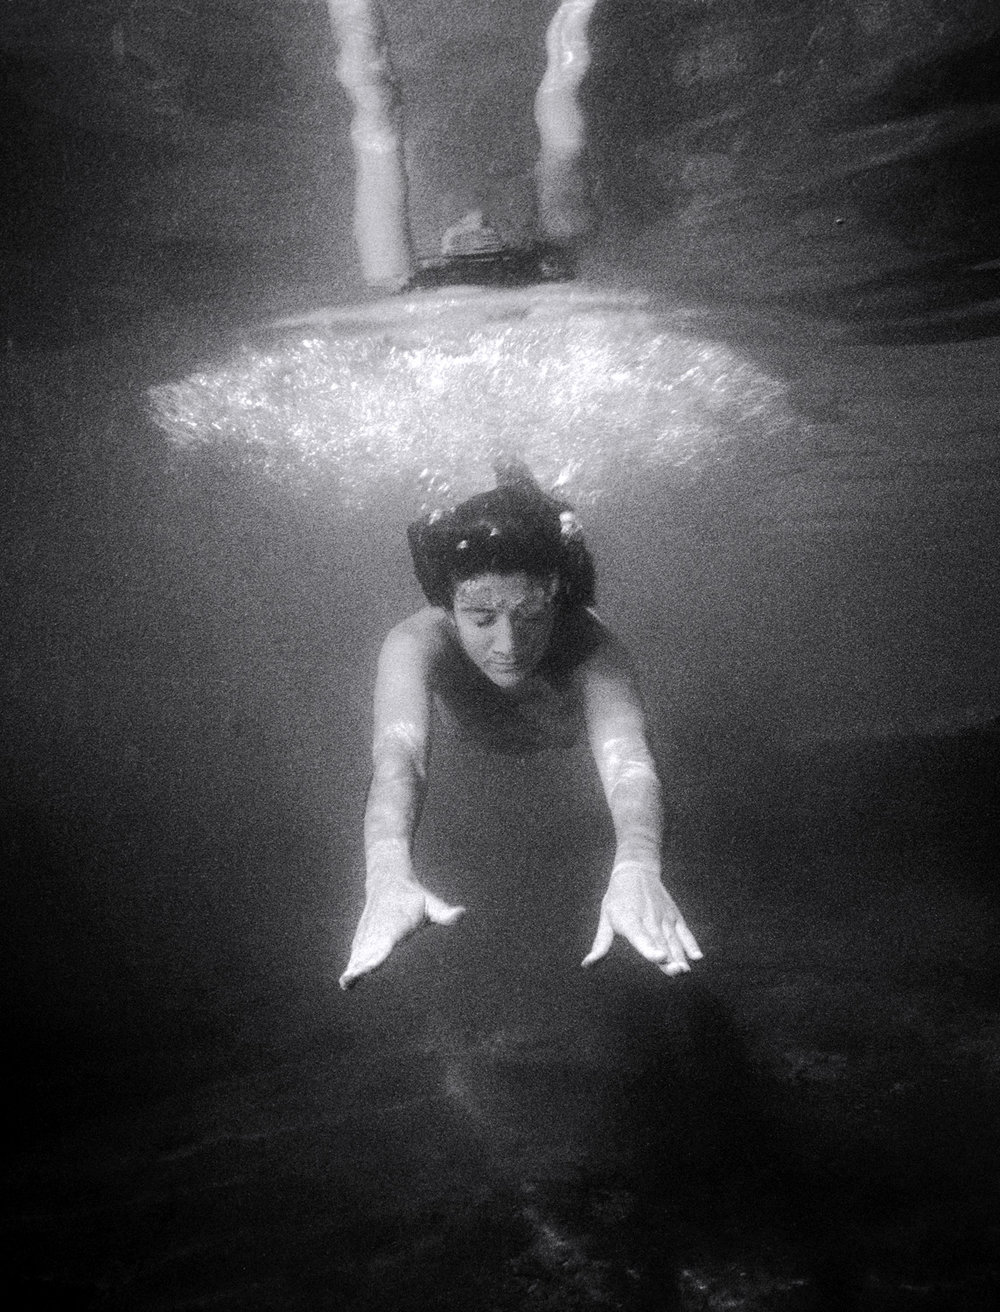 Rubin_Mikvah Project_03_DIVE.jpg